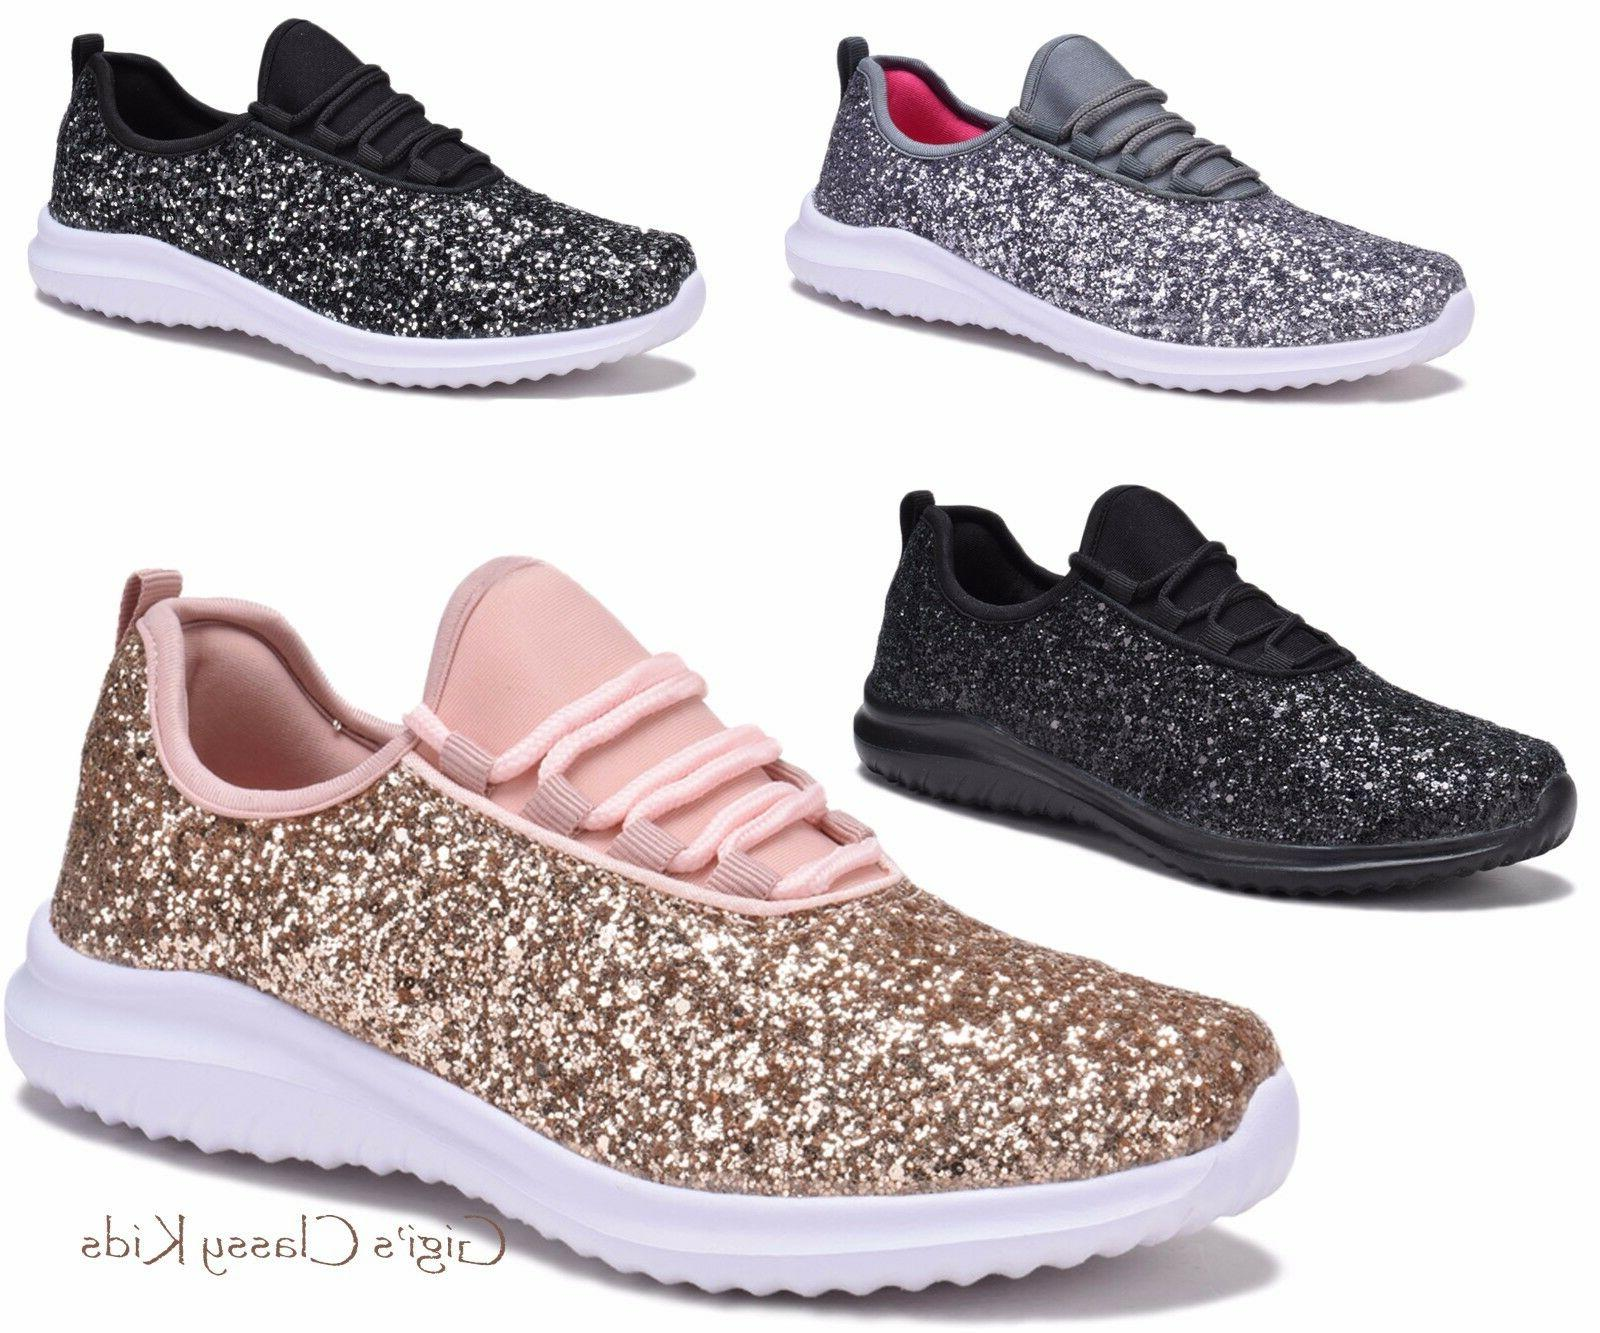 New Women's Sequin Glitter Lace Up Tennis Shoes Fashion Snea